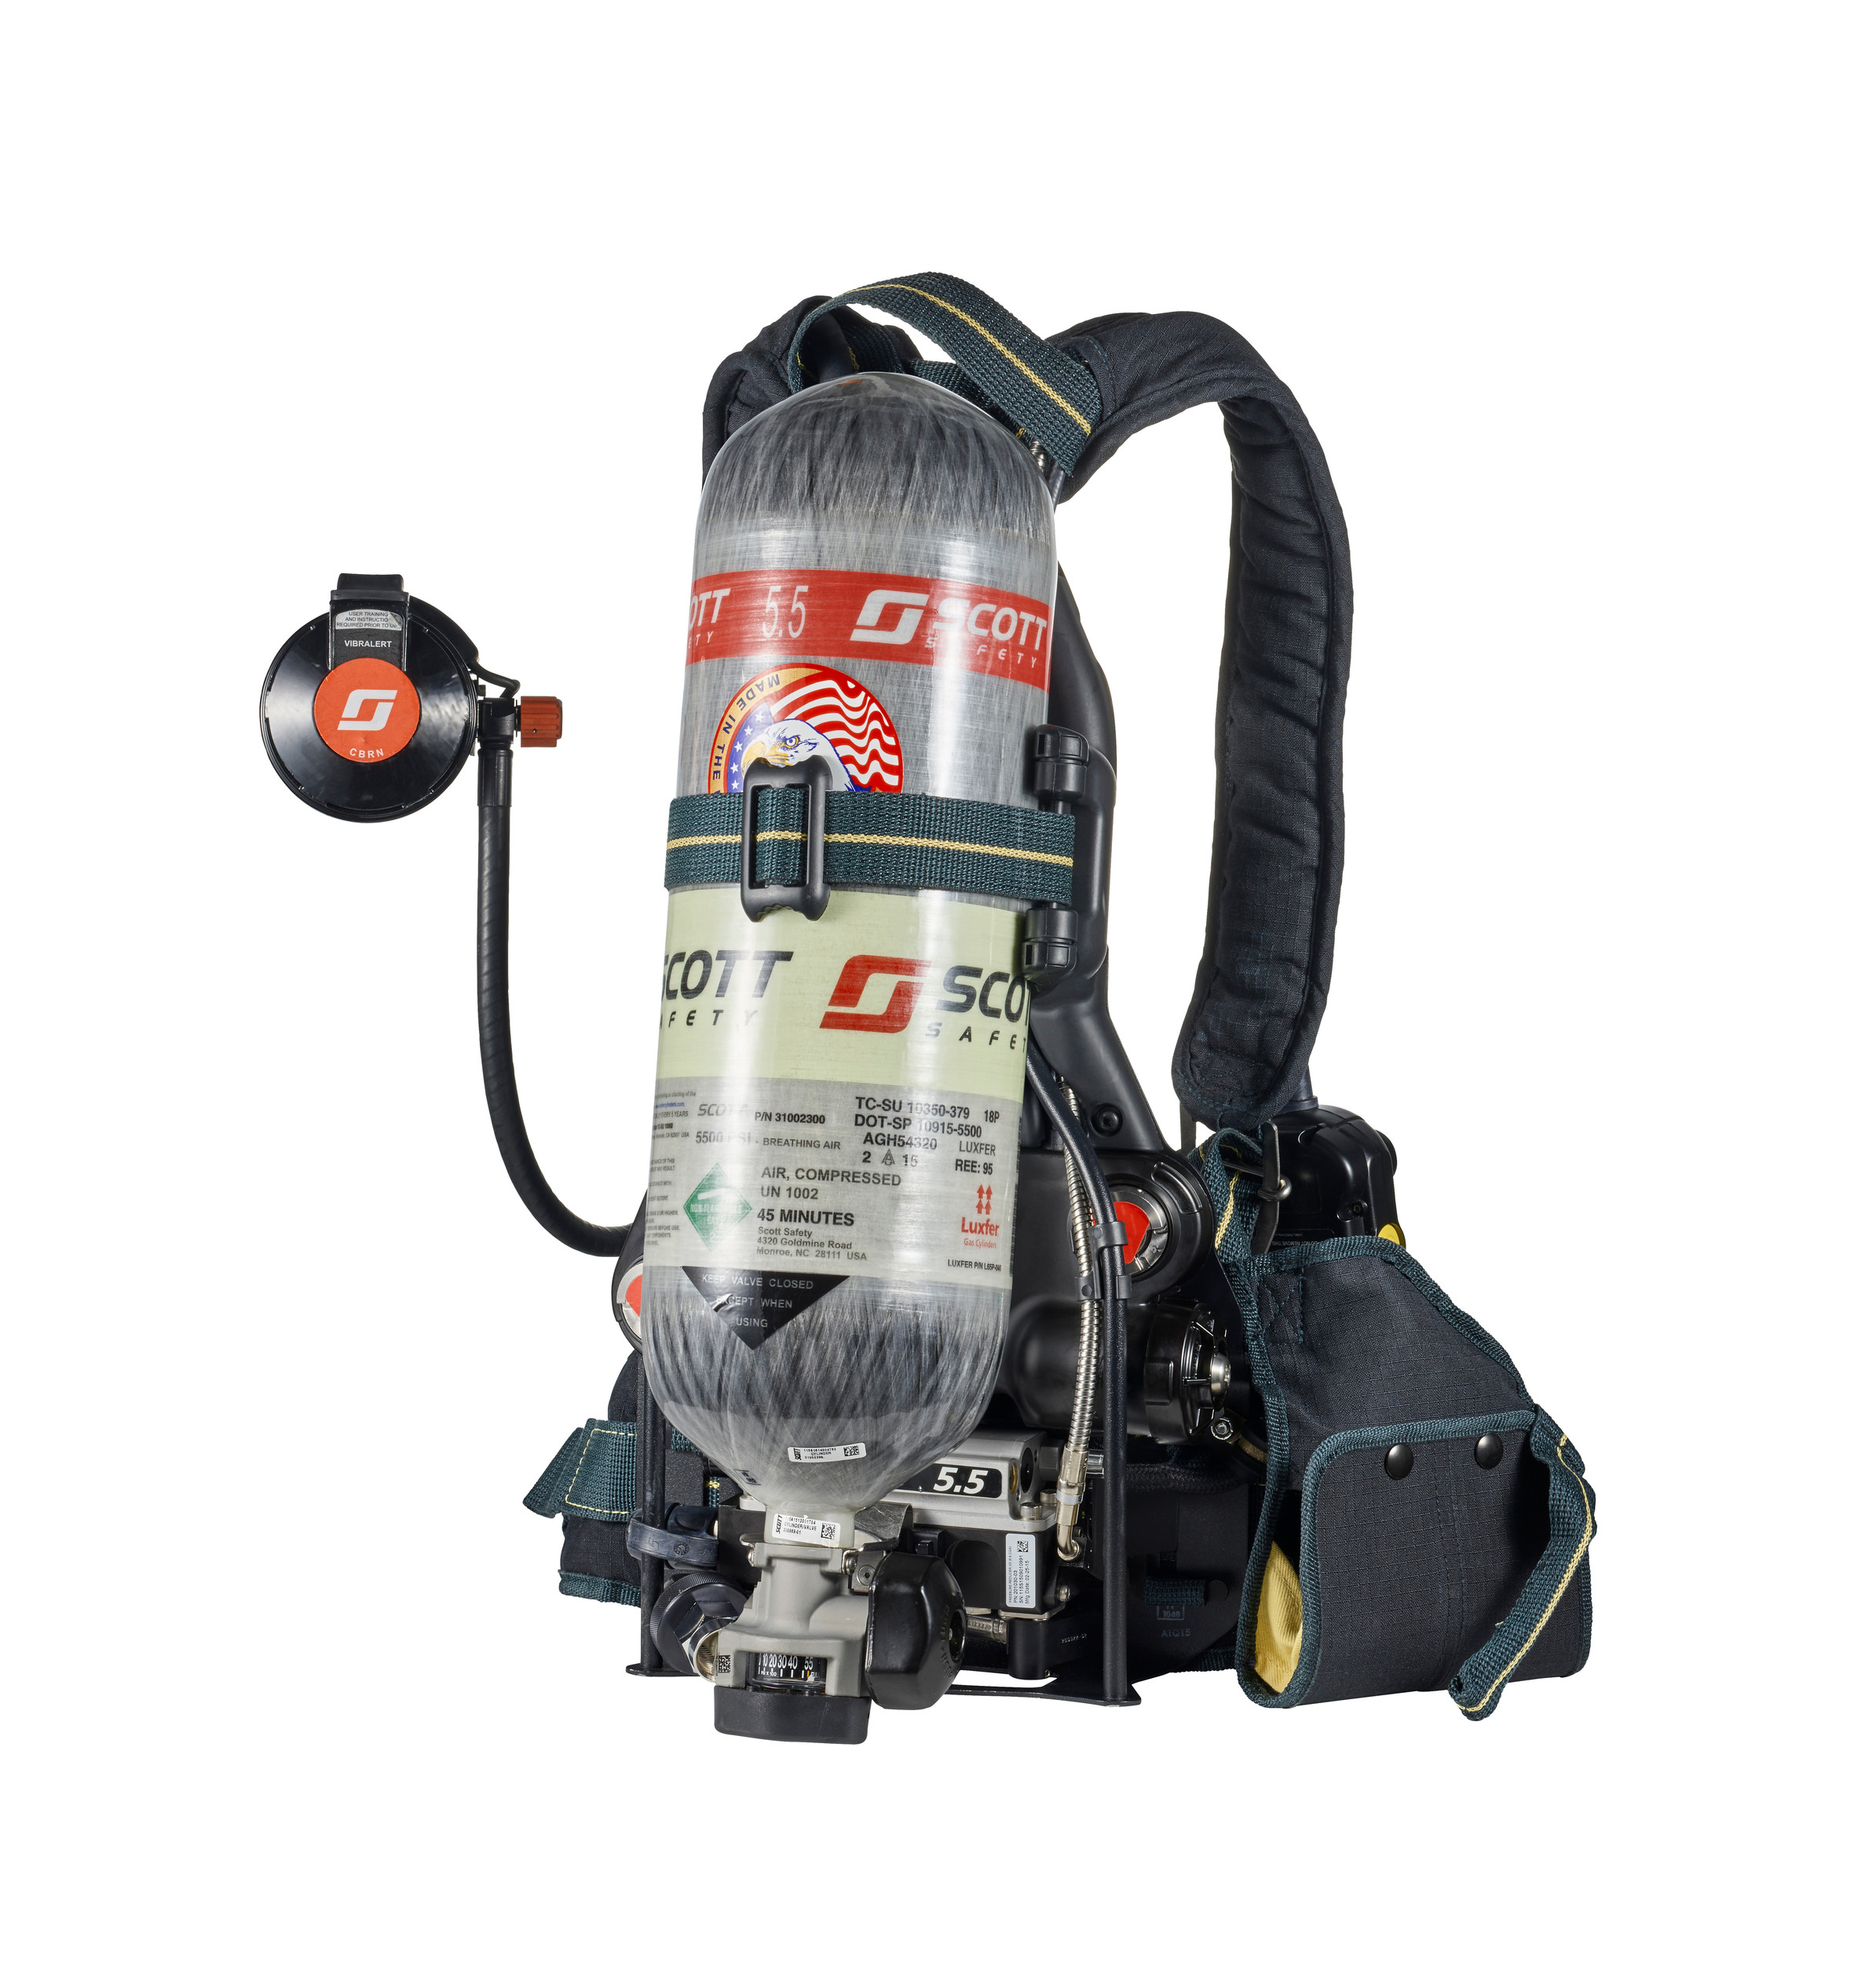 A self-contained breathing apparatus used by firefighters and manufactured by Scott Safety.